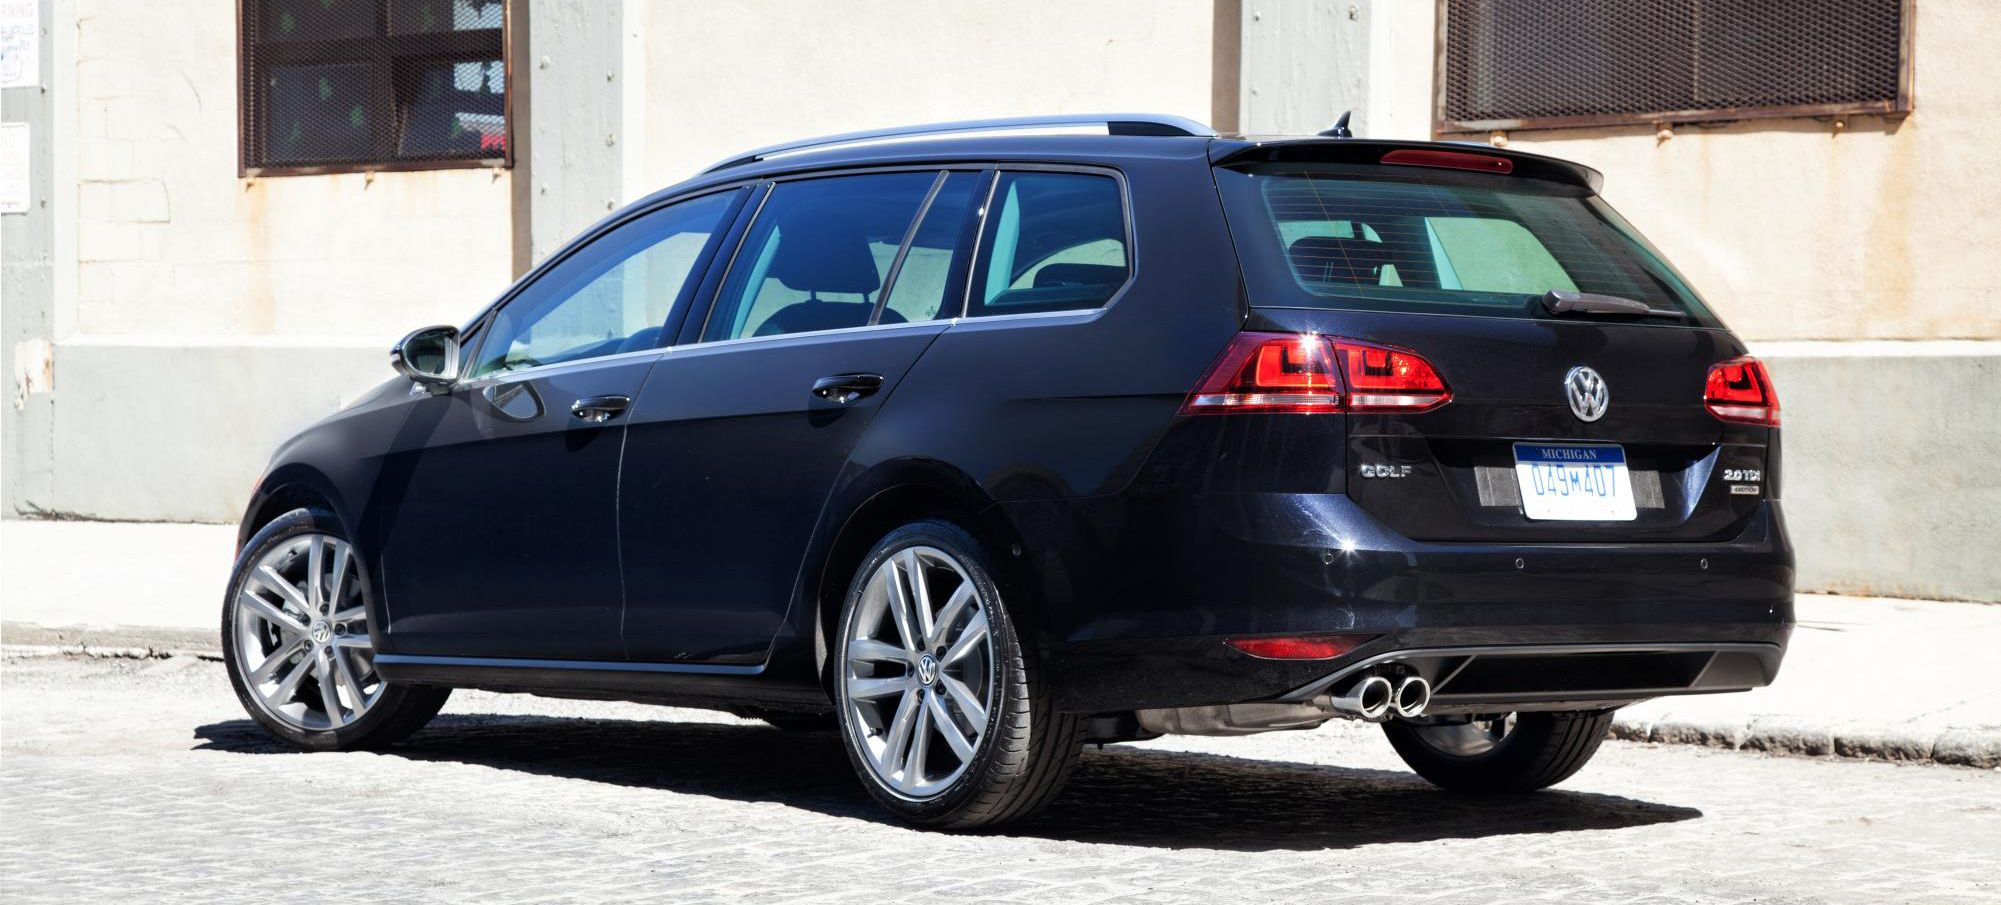 The 2015 vw sportwagen will be lighter and cheaper starting at the 2015 vw sportwagen will be lighter and cheaper starting at 21395 sciox Gallery